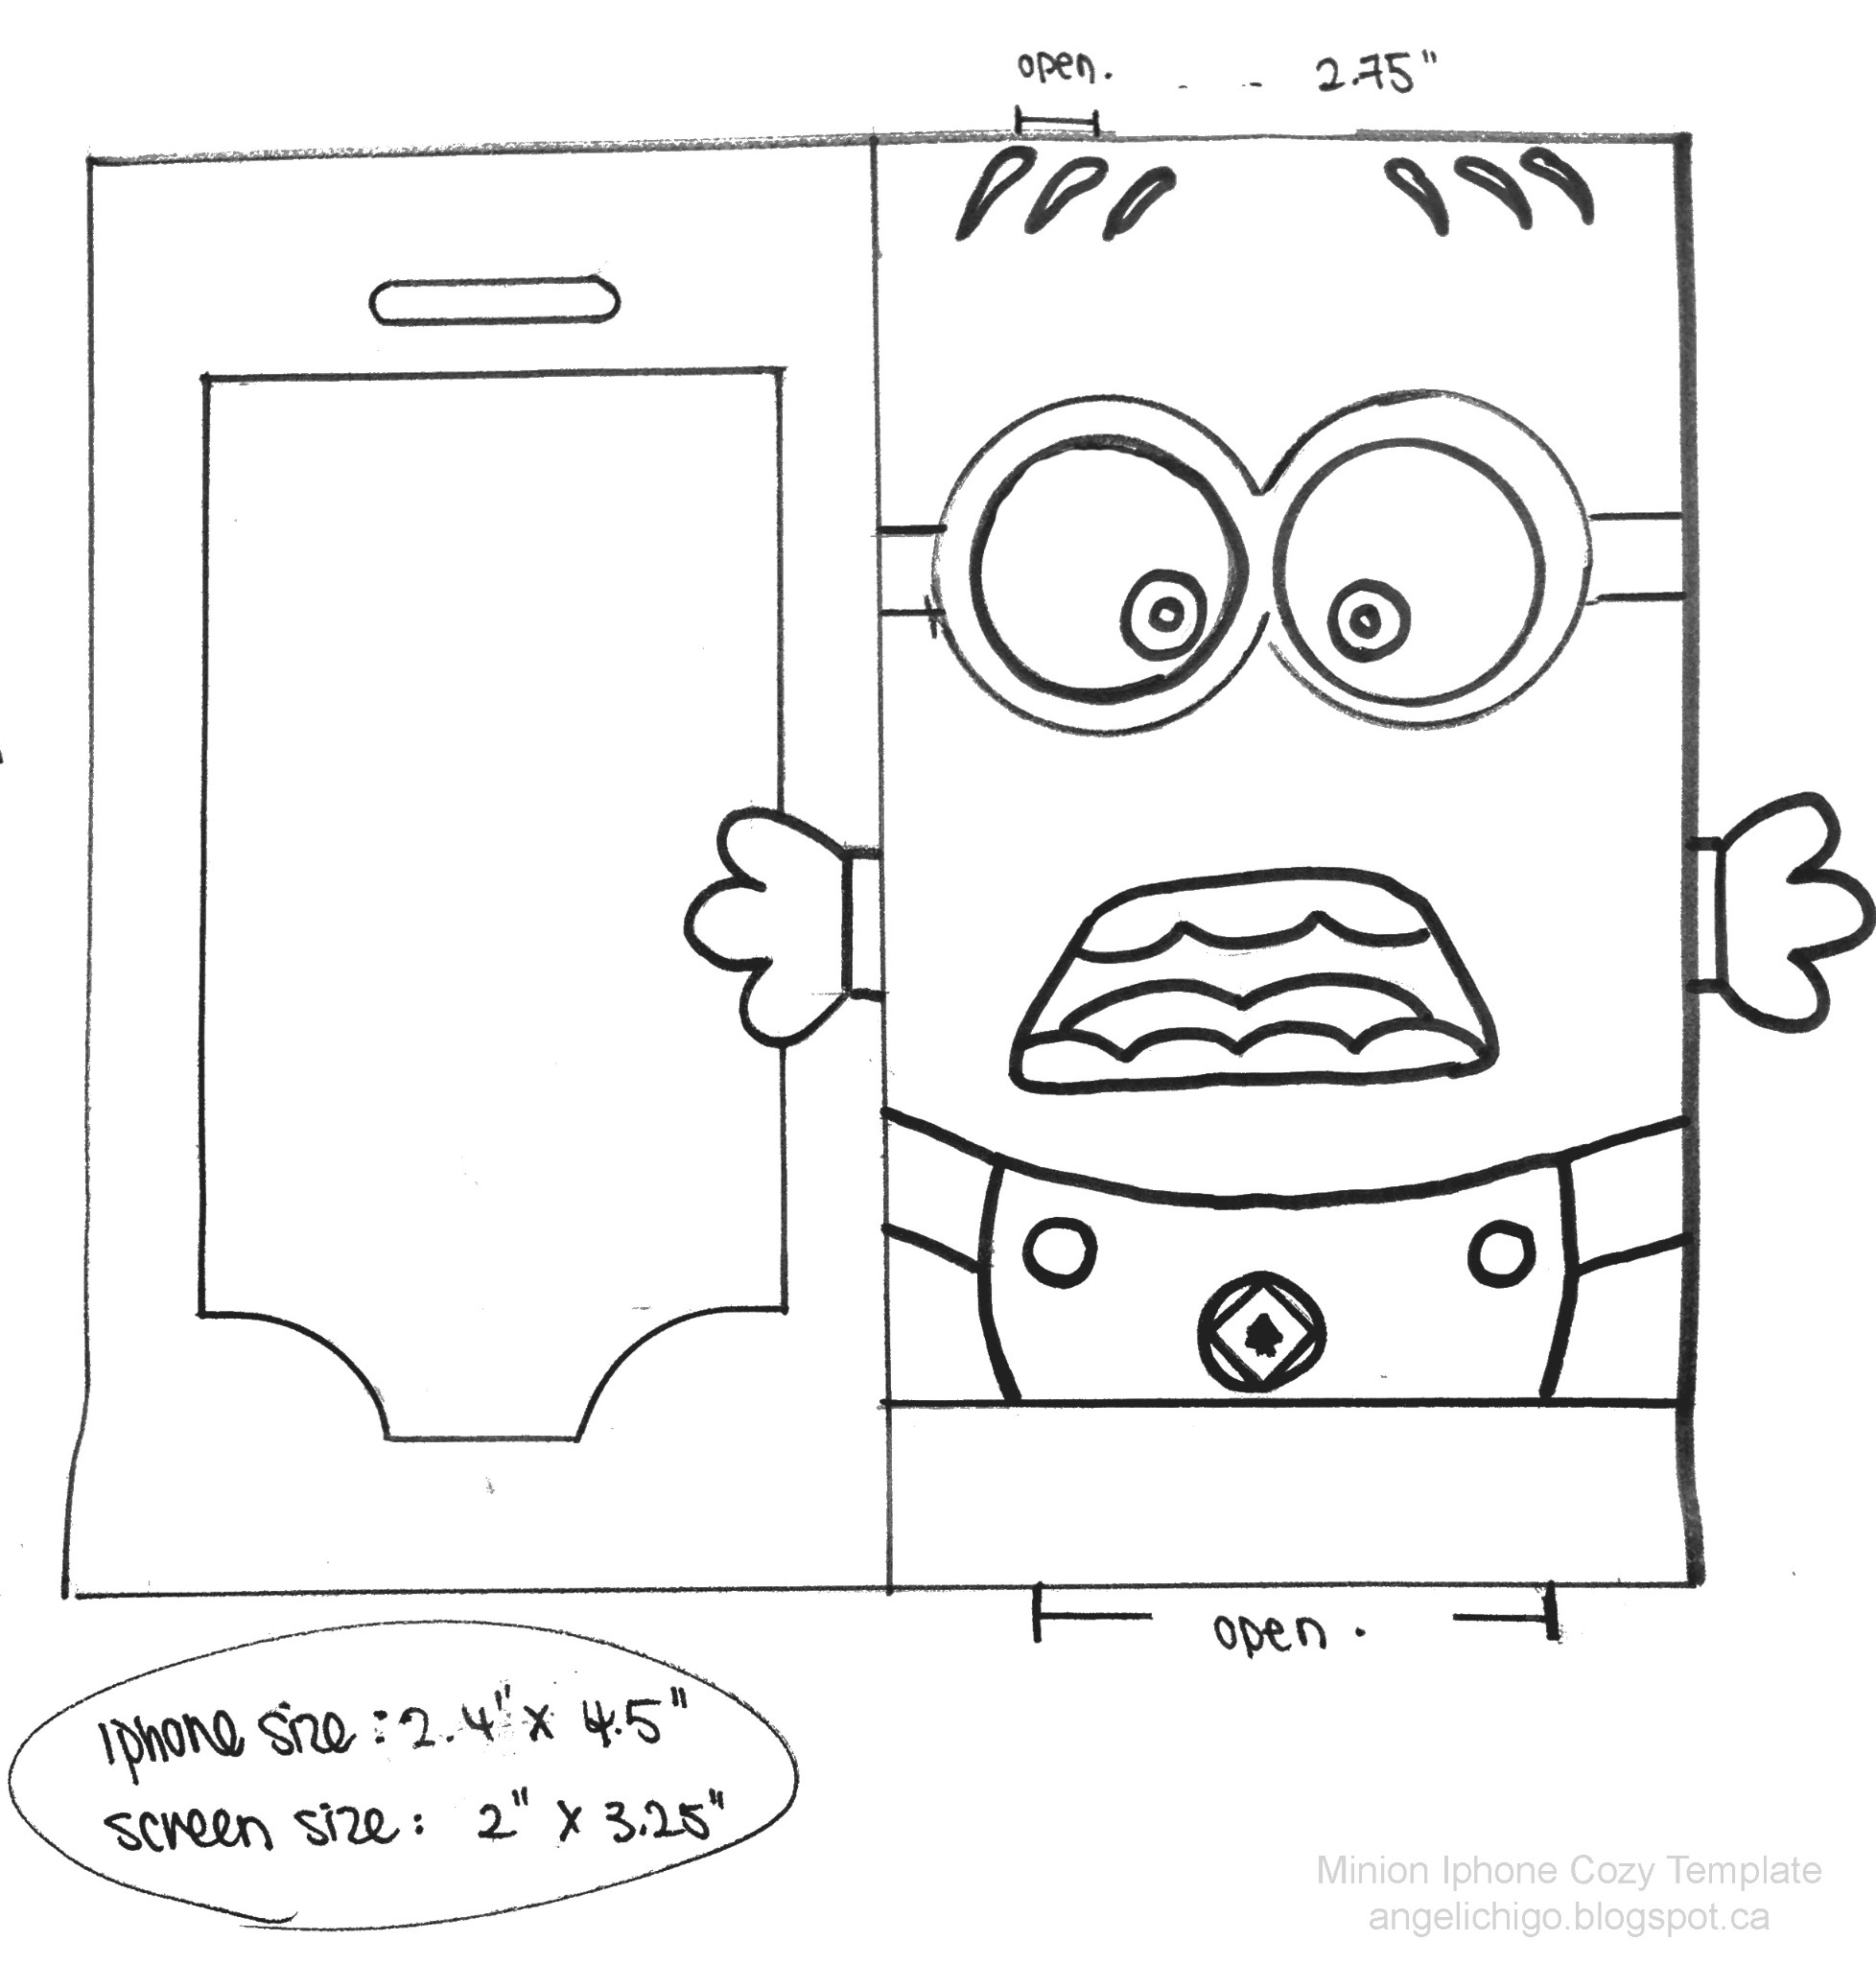 Minion printable template minion+iphone+cozy+template